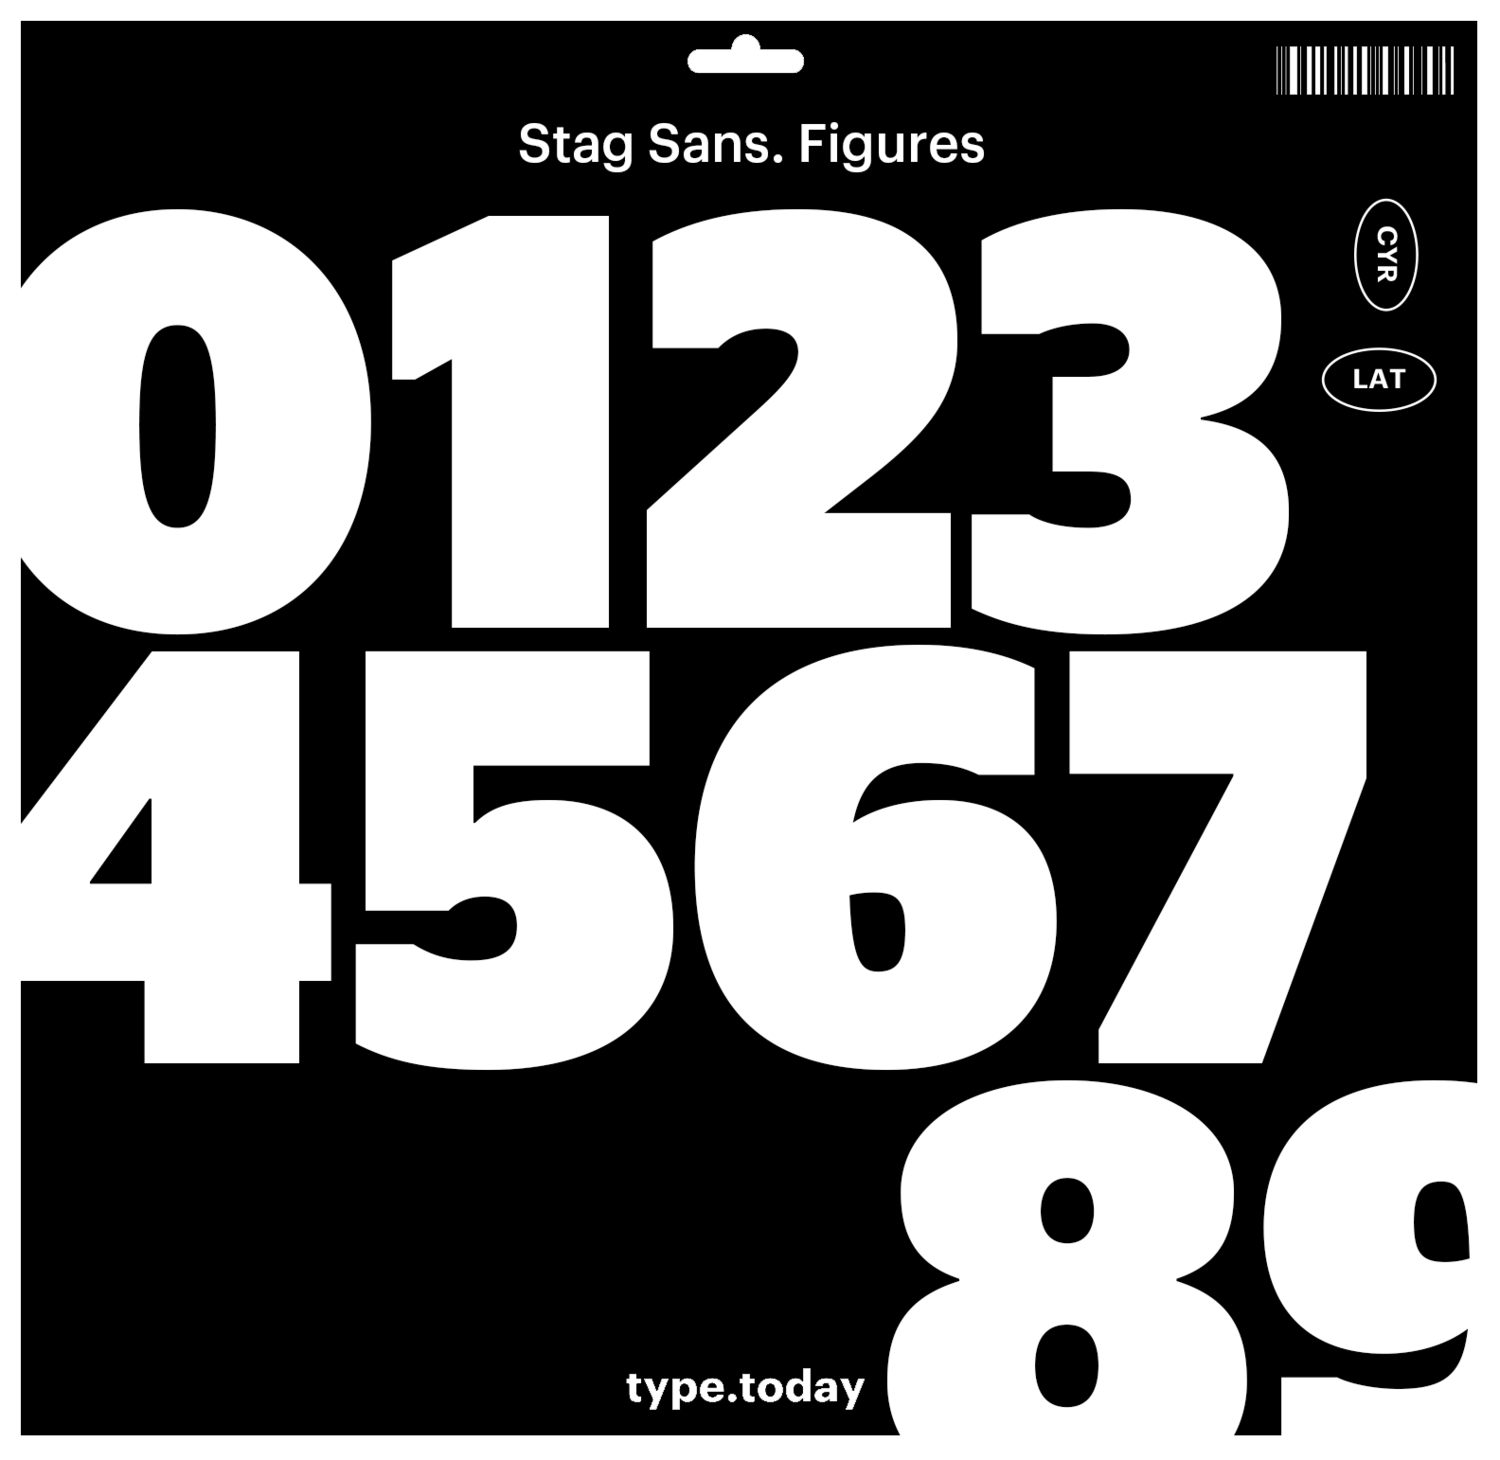 TT_StagSansFigures